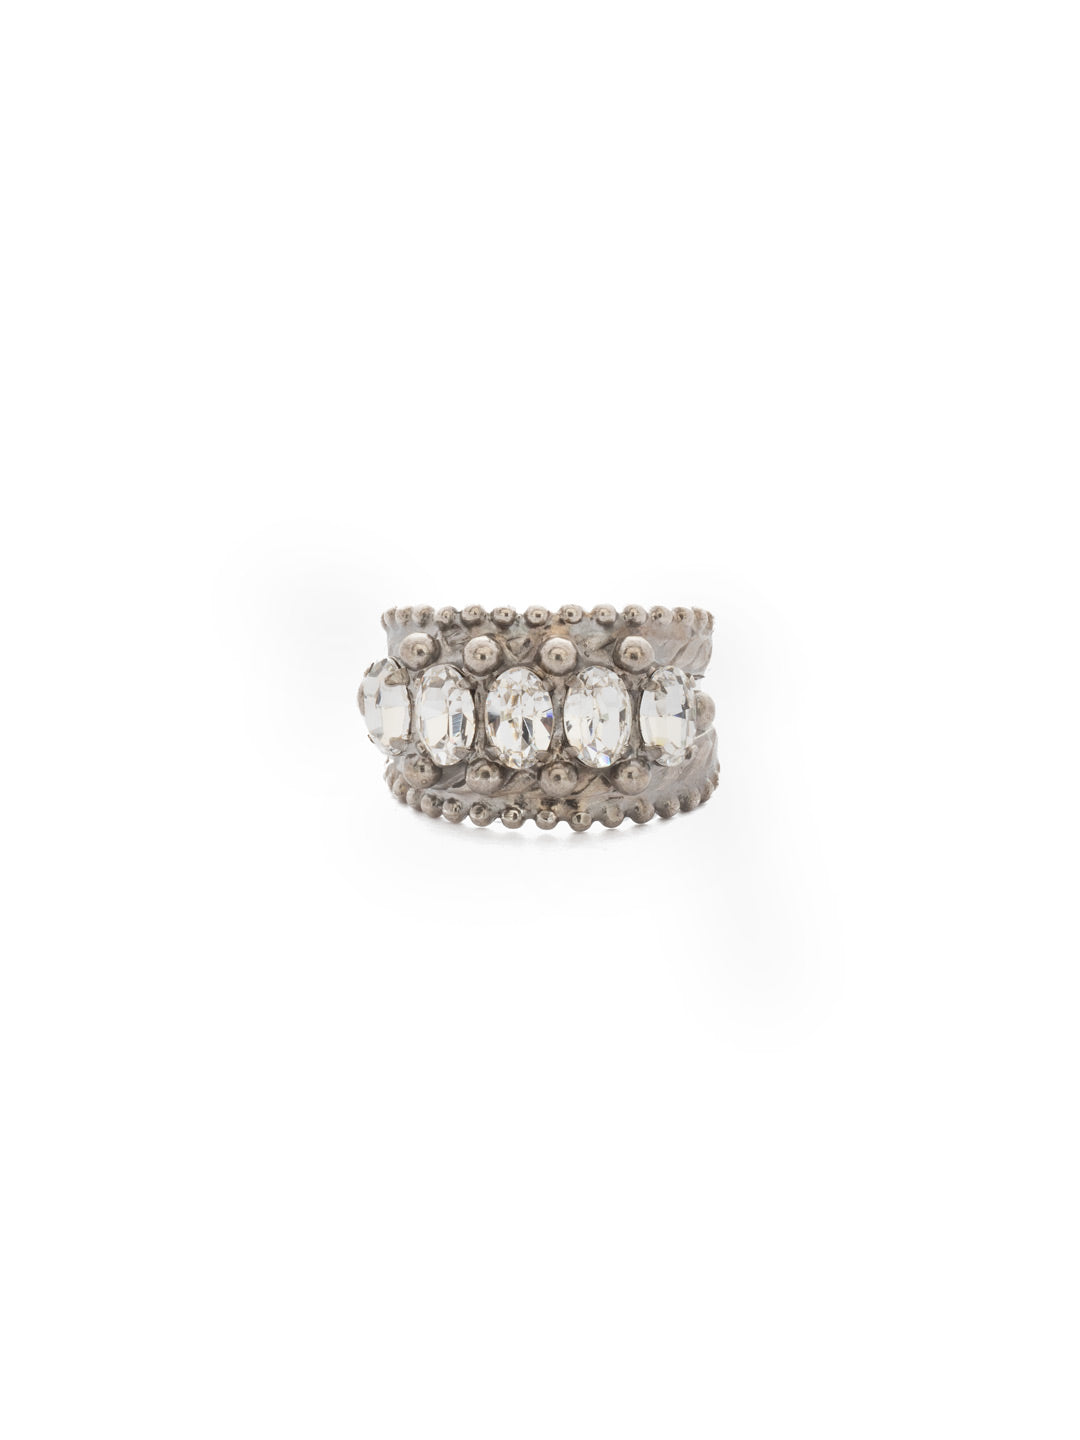 Crown Jewel Cocktail Ring - RDH2ASCRY